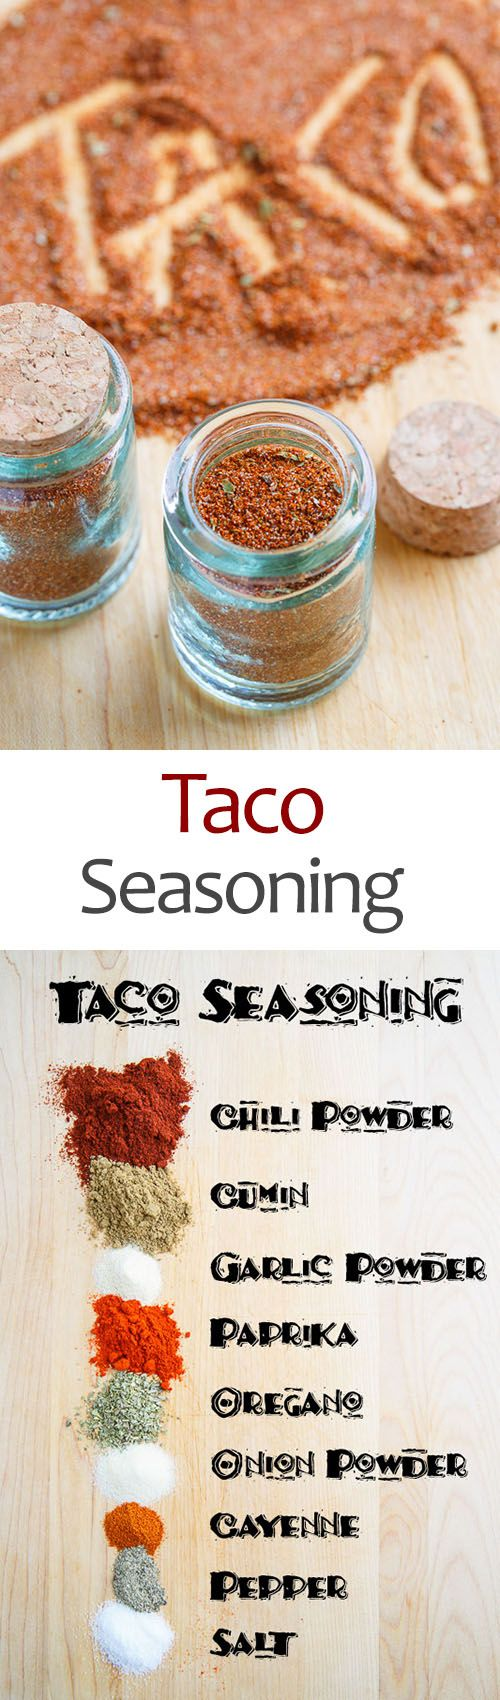 Hannah update: made a nice and spicy taco seasoning. Enough for 1 lb. Of meat.